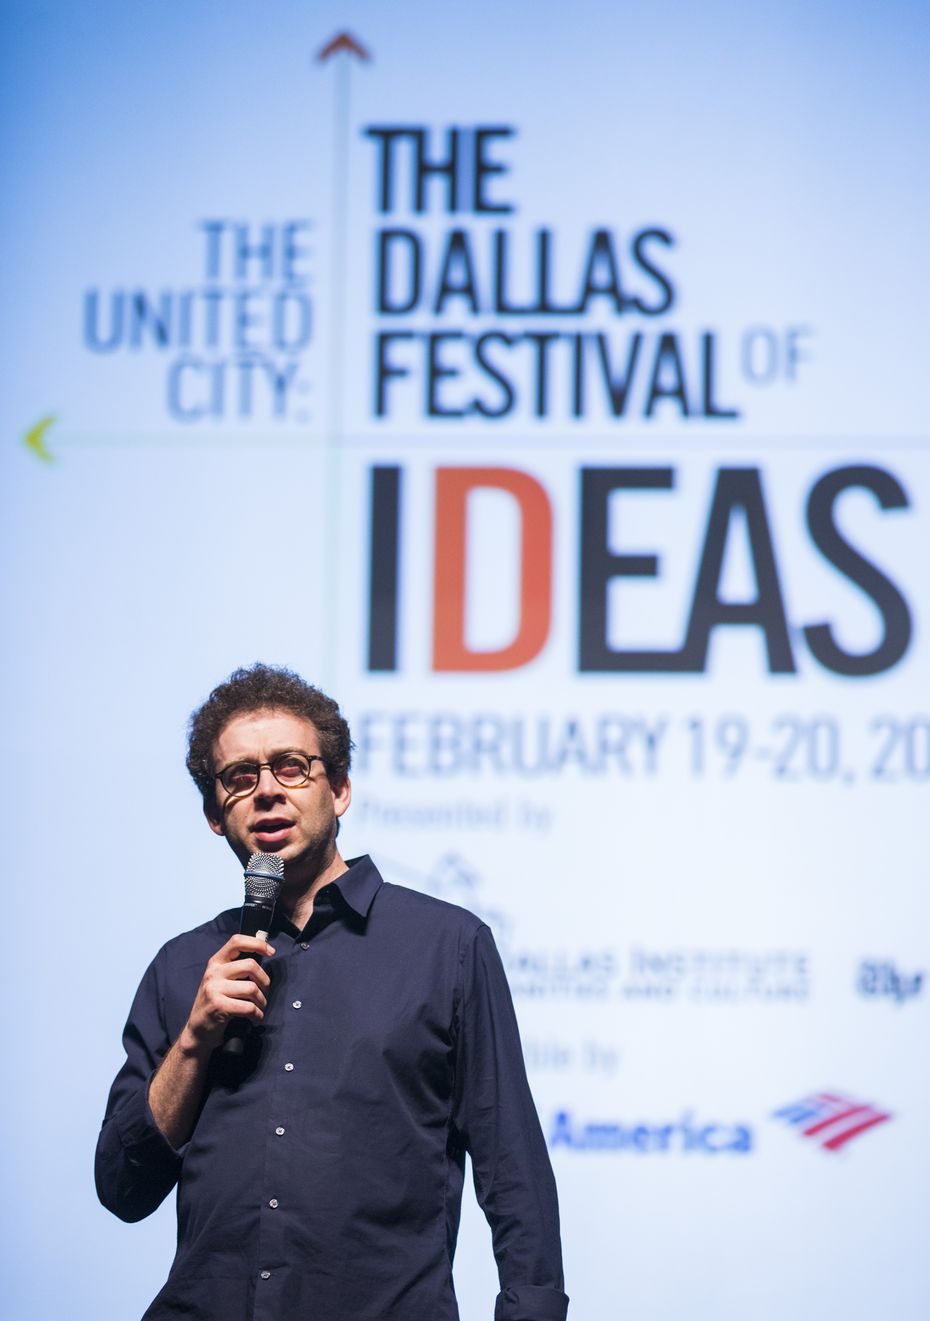 Lamster in 2016 leading a panel discussion in Fair Park for the Dallas Festival of Ideas.